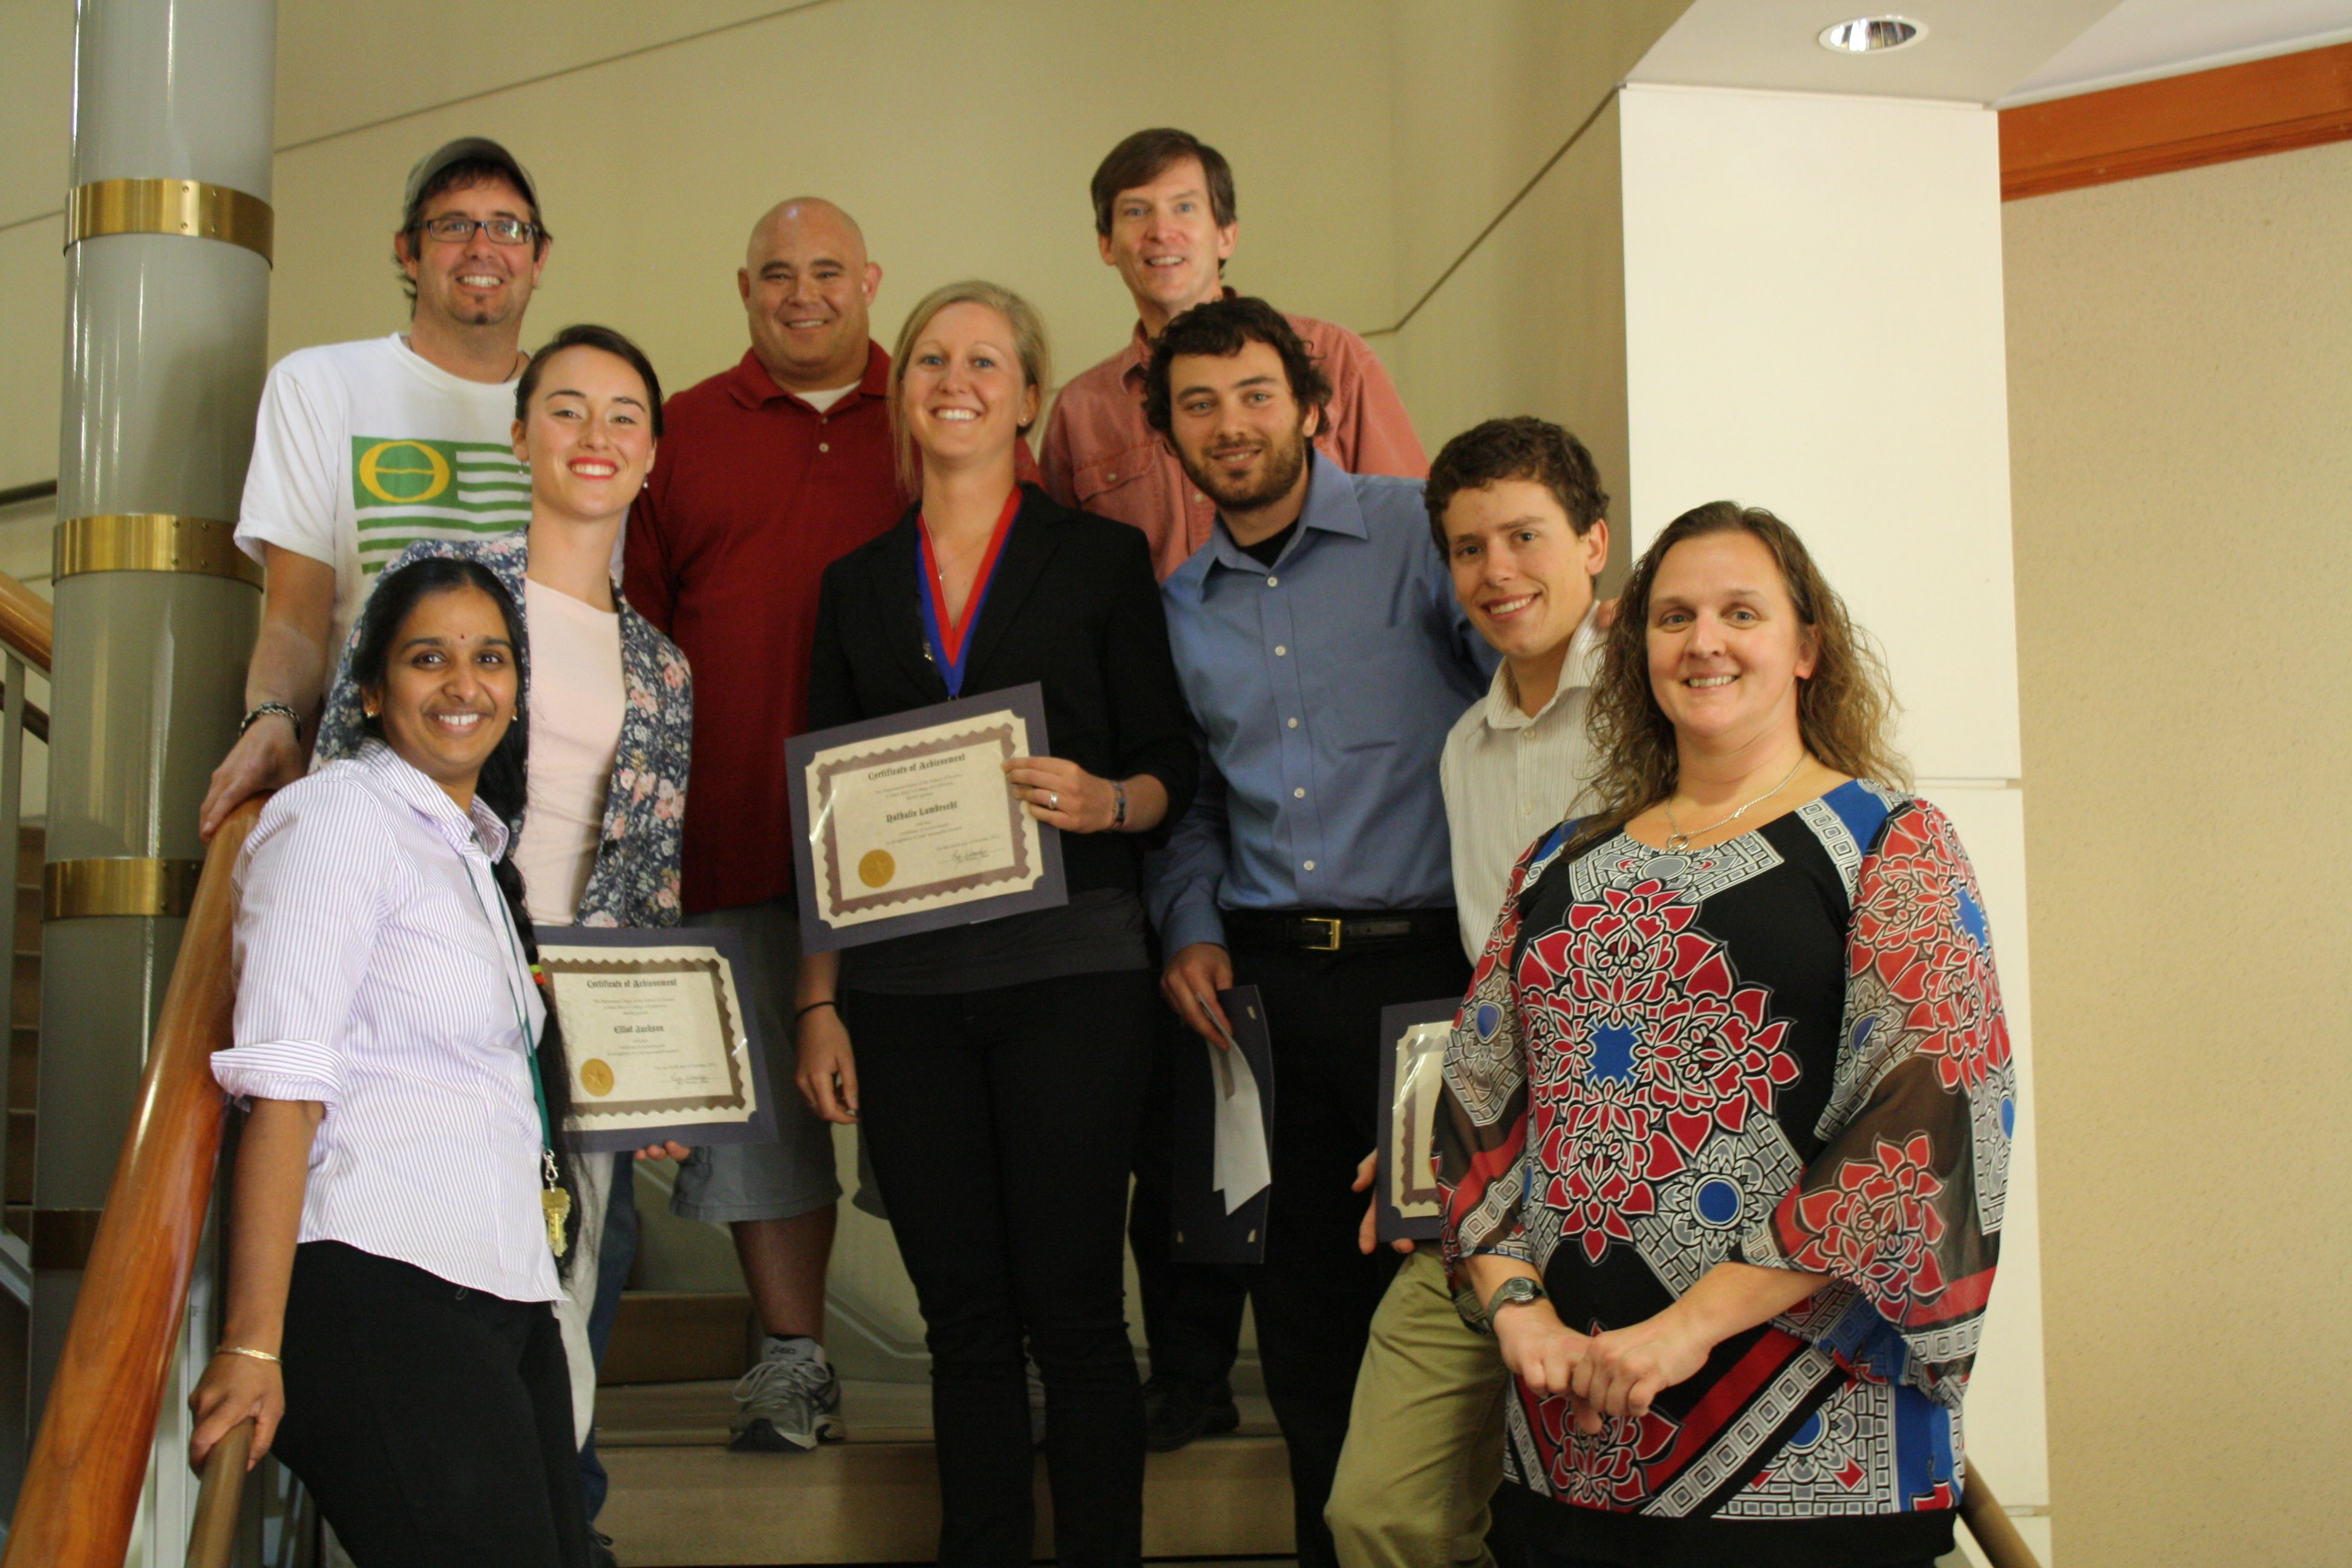 Students with projects chosen as superior by a panel of faculty and students were: Eliot Jackson, Nathalie Lambrecht, Anthony Villafranca, and Vincent O'Brien (pictured in the center, left to right). On the periphery of the photo are the faculty mentors: Dr. Vidya Chandrasekaran, Dr. Michael Marchetti, Dr. Jeff Bernard, Dr. Joel Burley, and Dr. Valerie Burke.